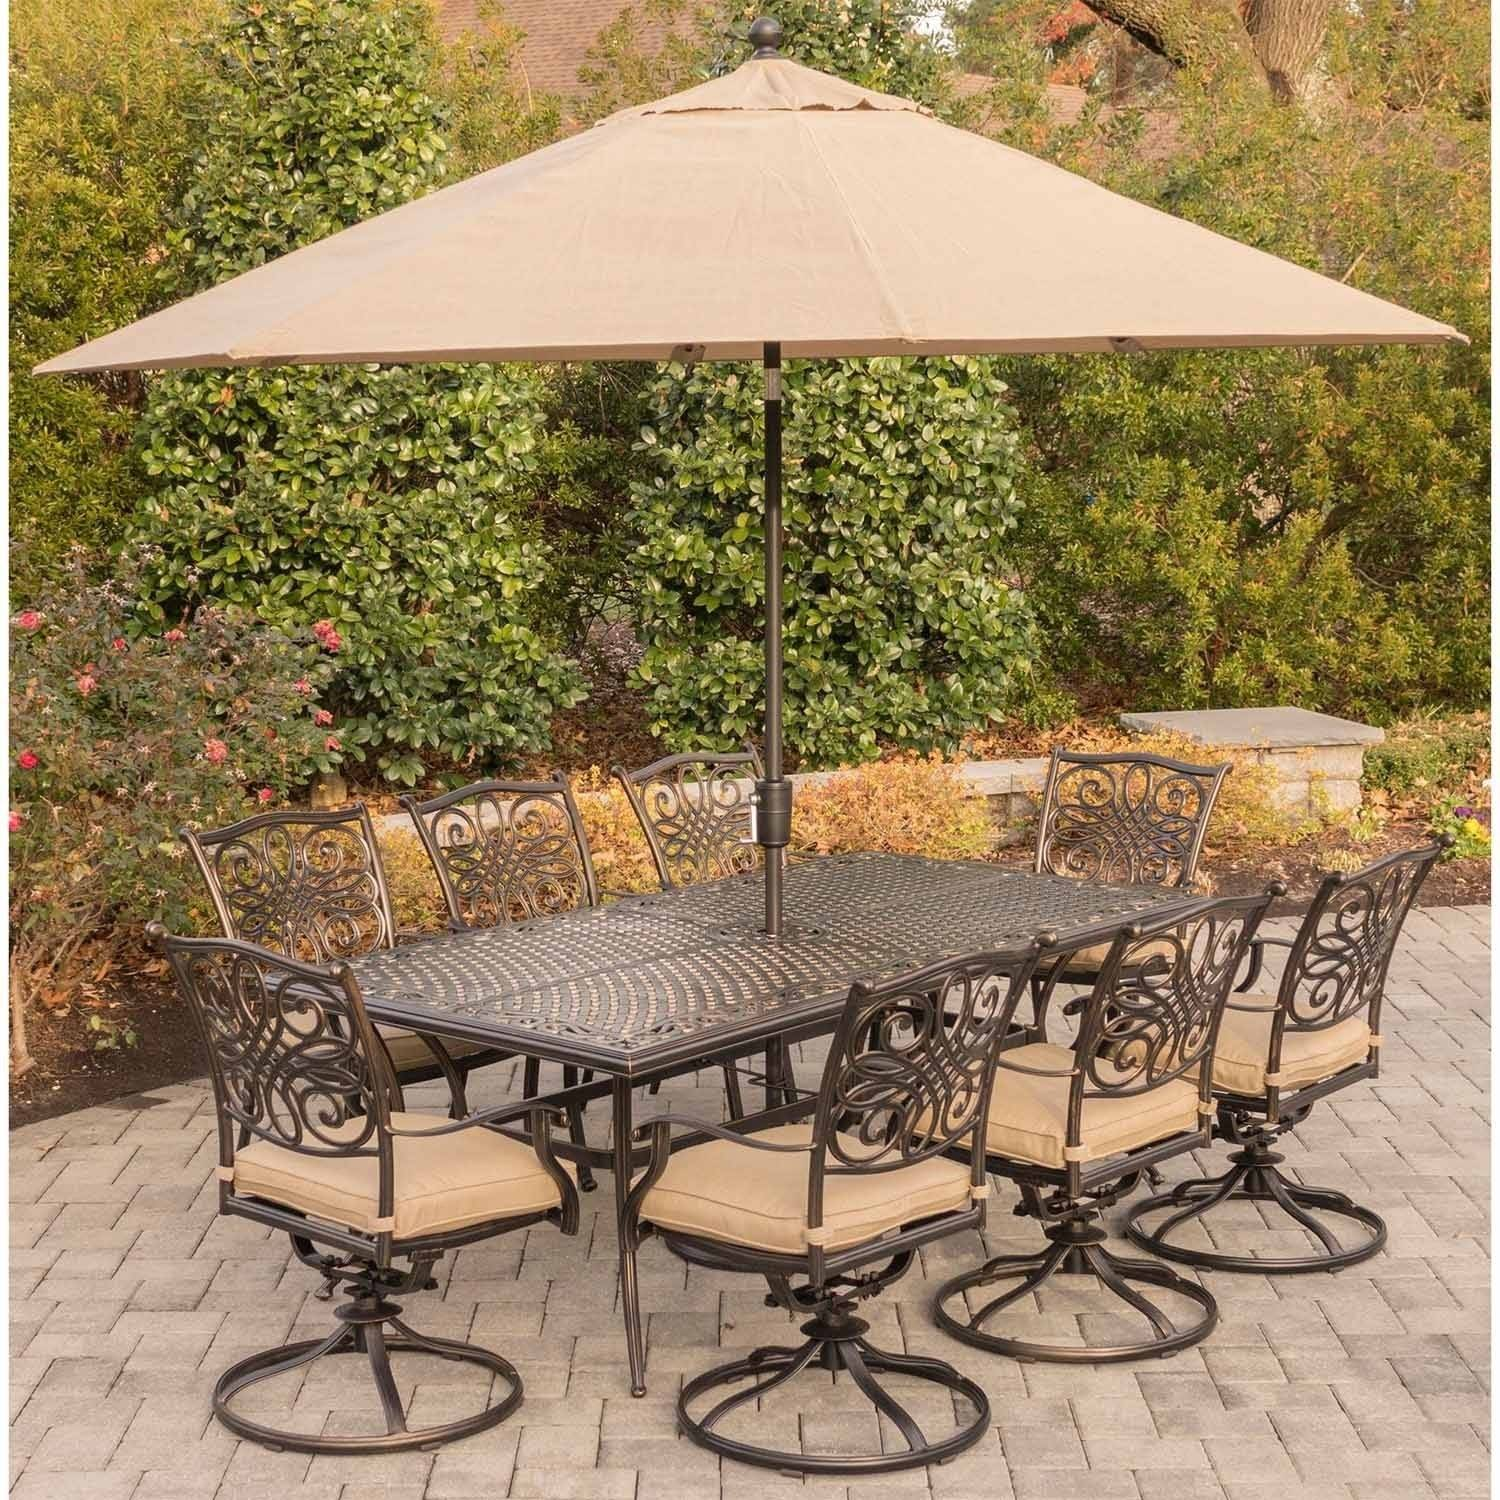 """Hanover Outdoor Traditions 9-Piece Dining Set with 42"""" x 84"""" Cast-Top Table, 8 Swivel Rockers and Umbrella with Stand, Natural Oat"""